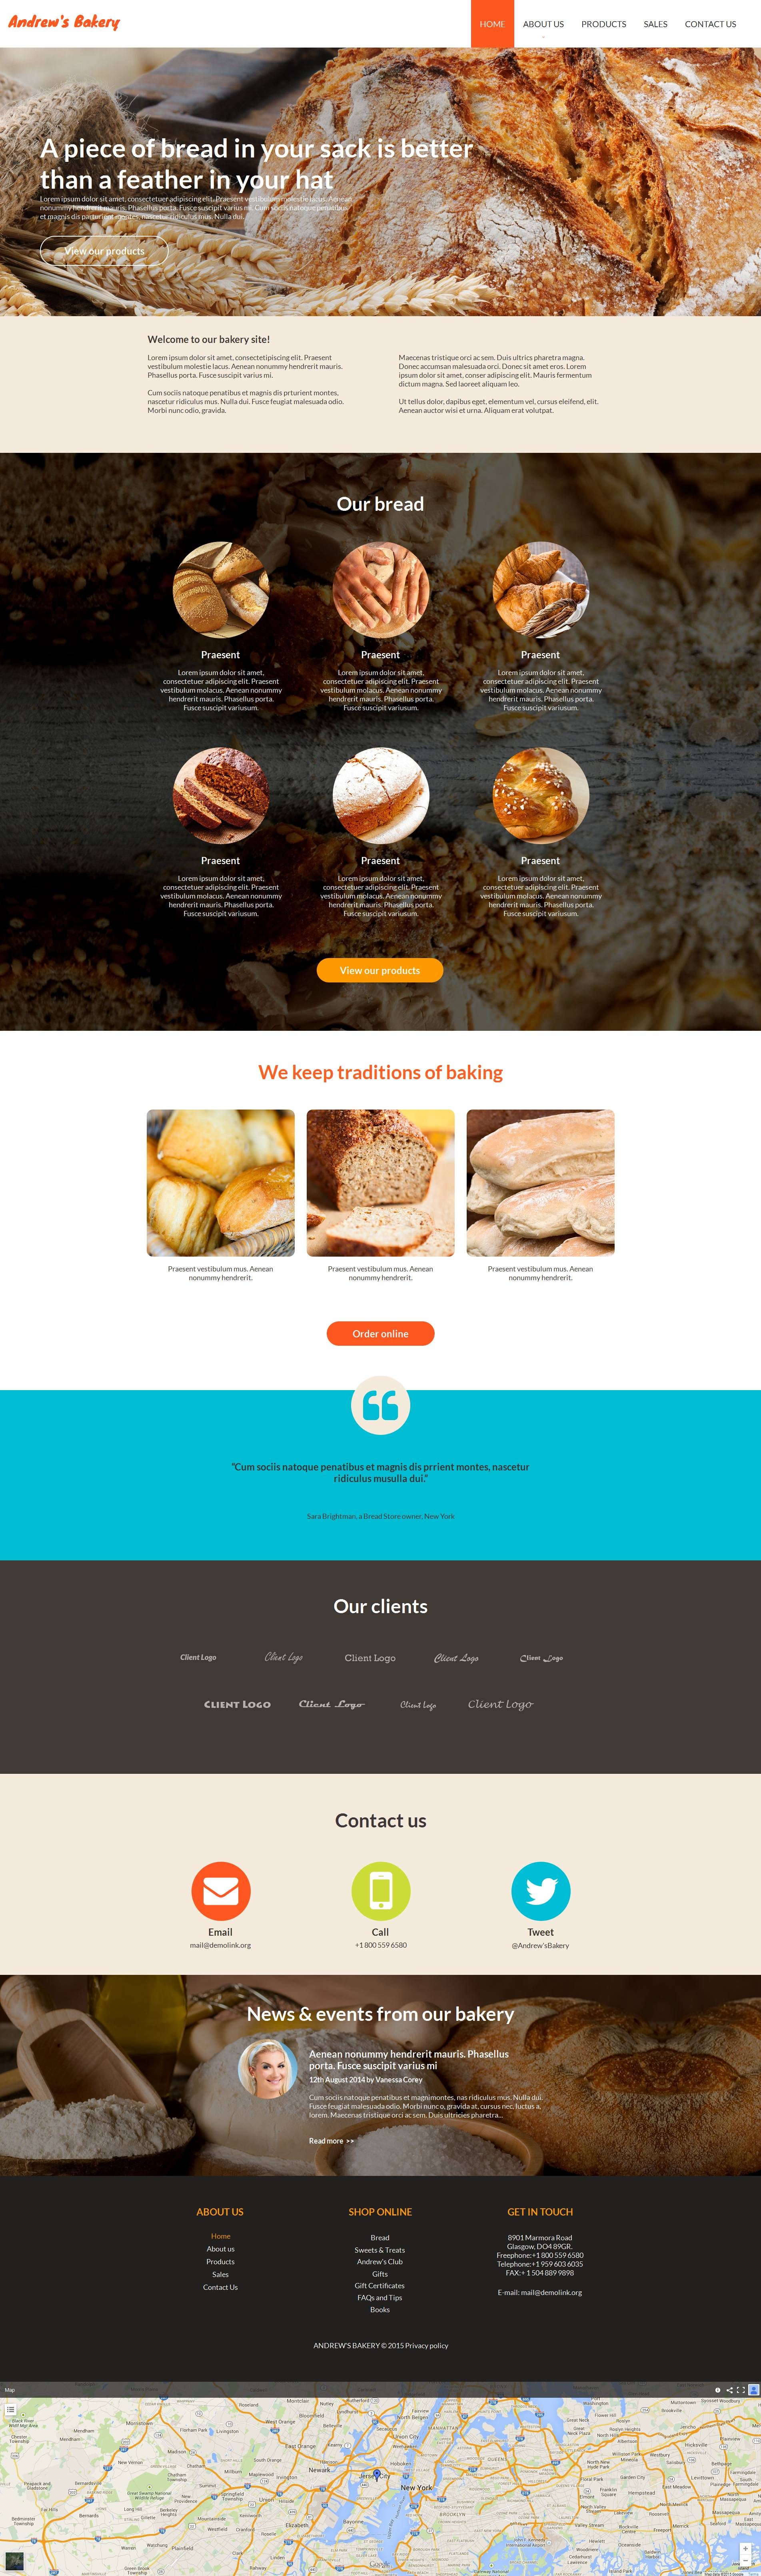 The Andrew's Bakery Products Moto CMS HTML Design 53616, one of the best Moto CMS HTML templates of its kind (food & drink), also known as Andrew's Bakery products Moto CMS HTML template, chocolate Moto CMS HTML template, cake Moto CMS HTML template, biscuit Moto CMS HTML template, filling Moto CMS HTML template, tasty Moto CMS HTML template, delicious Moto CMS HTML template, wedding Moto CMS HTML template, celebration Moto CMS HTML template, birthday Moto CMS HTML template, fruits Moto CMS HTML template, sweets Moto CMS HTML template, cookies Moto CMS HTML template, specials Moto CMS HTML template, receipts Moto CMS HTML template, pastry Moto CMS HTML template, fancy Moto CMS HTML template, tarts Moto CMS HTML template, custard Moto CMS HTML template, cream Moto CMS HTML template, cookery Moto CMS HTML template, experts Moto CMS HTML template, masters Moto CMS HTML template, services Moto CMS HTML template, order Moto CMS HTML template, quotes Moto CMS HTML template, delivery Moto CMS HTML template, staff and related with Andrew's Bakery products, chocolate, cake, biscuit, filling, tasty, delicious, wedding, celebration, birthday, fruits, sweets, cookies, specials, receipts, pastry, fancy, tarts, custard, cream, cookery, experts, masters, services, order, quotes, delivery, staff, etc.